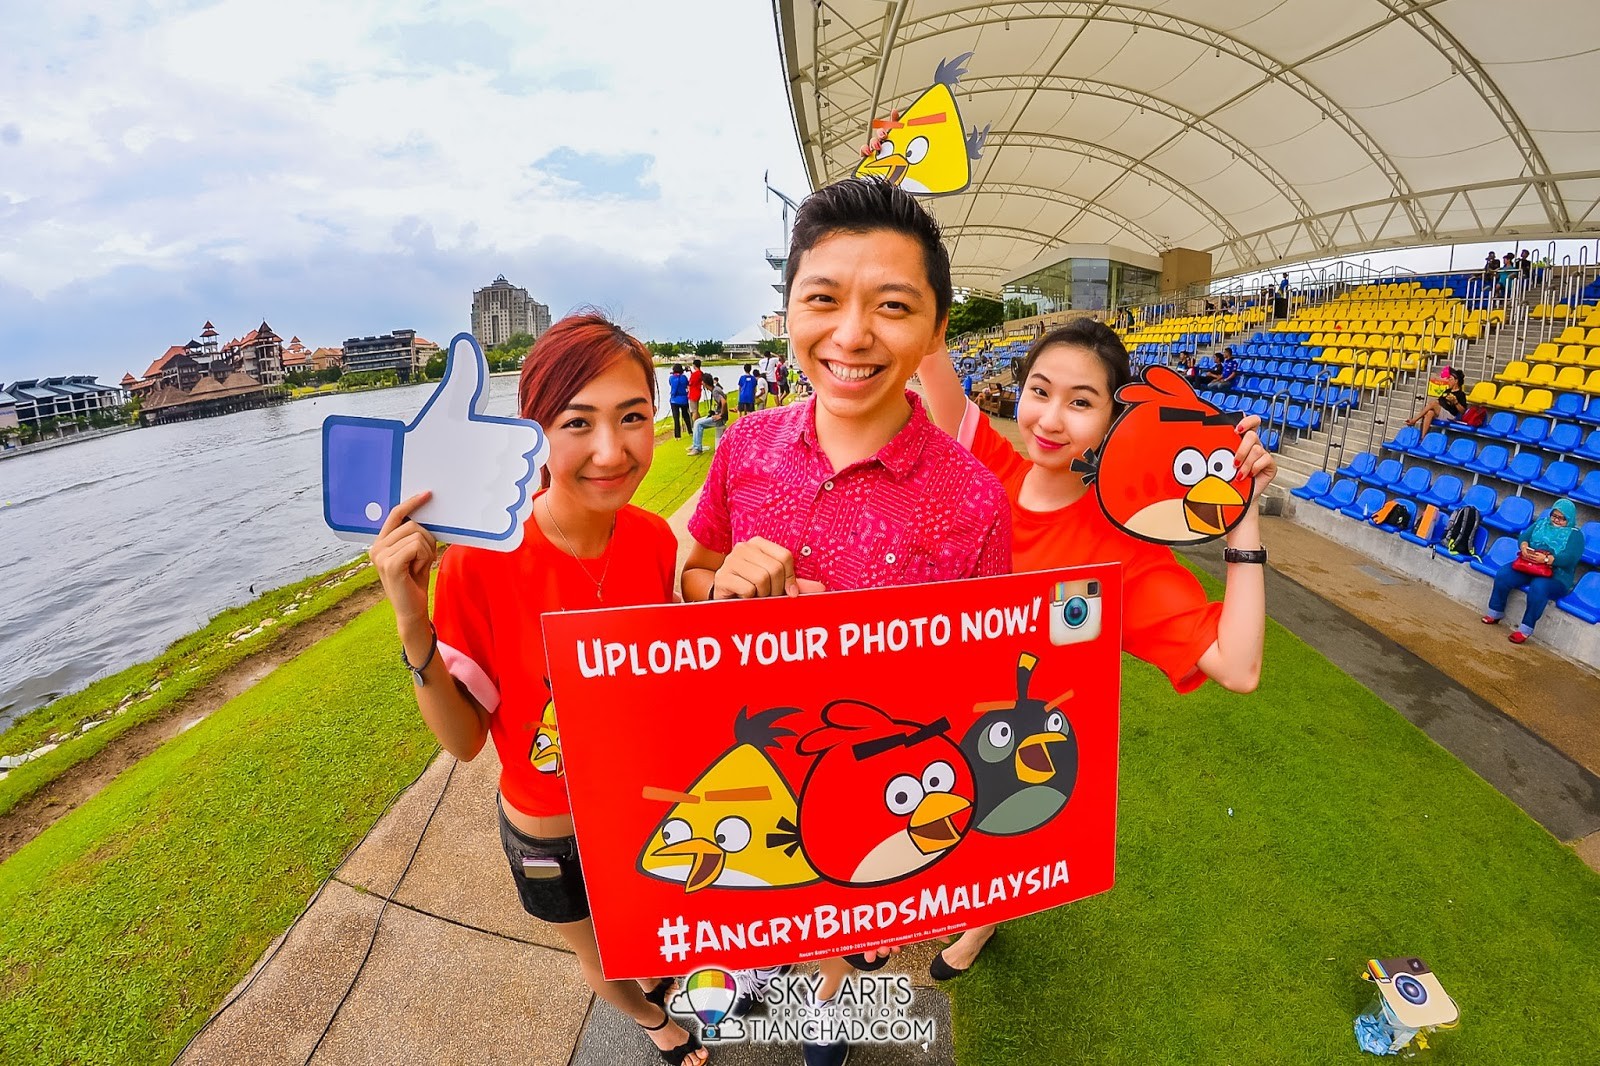 #TCFisheye with beautiful Angry Birds ambassadors at Putrajaya Nautique Ski & Wake Championship 2014 #AngryBirdsMalaysia